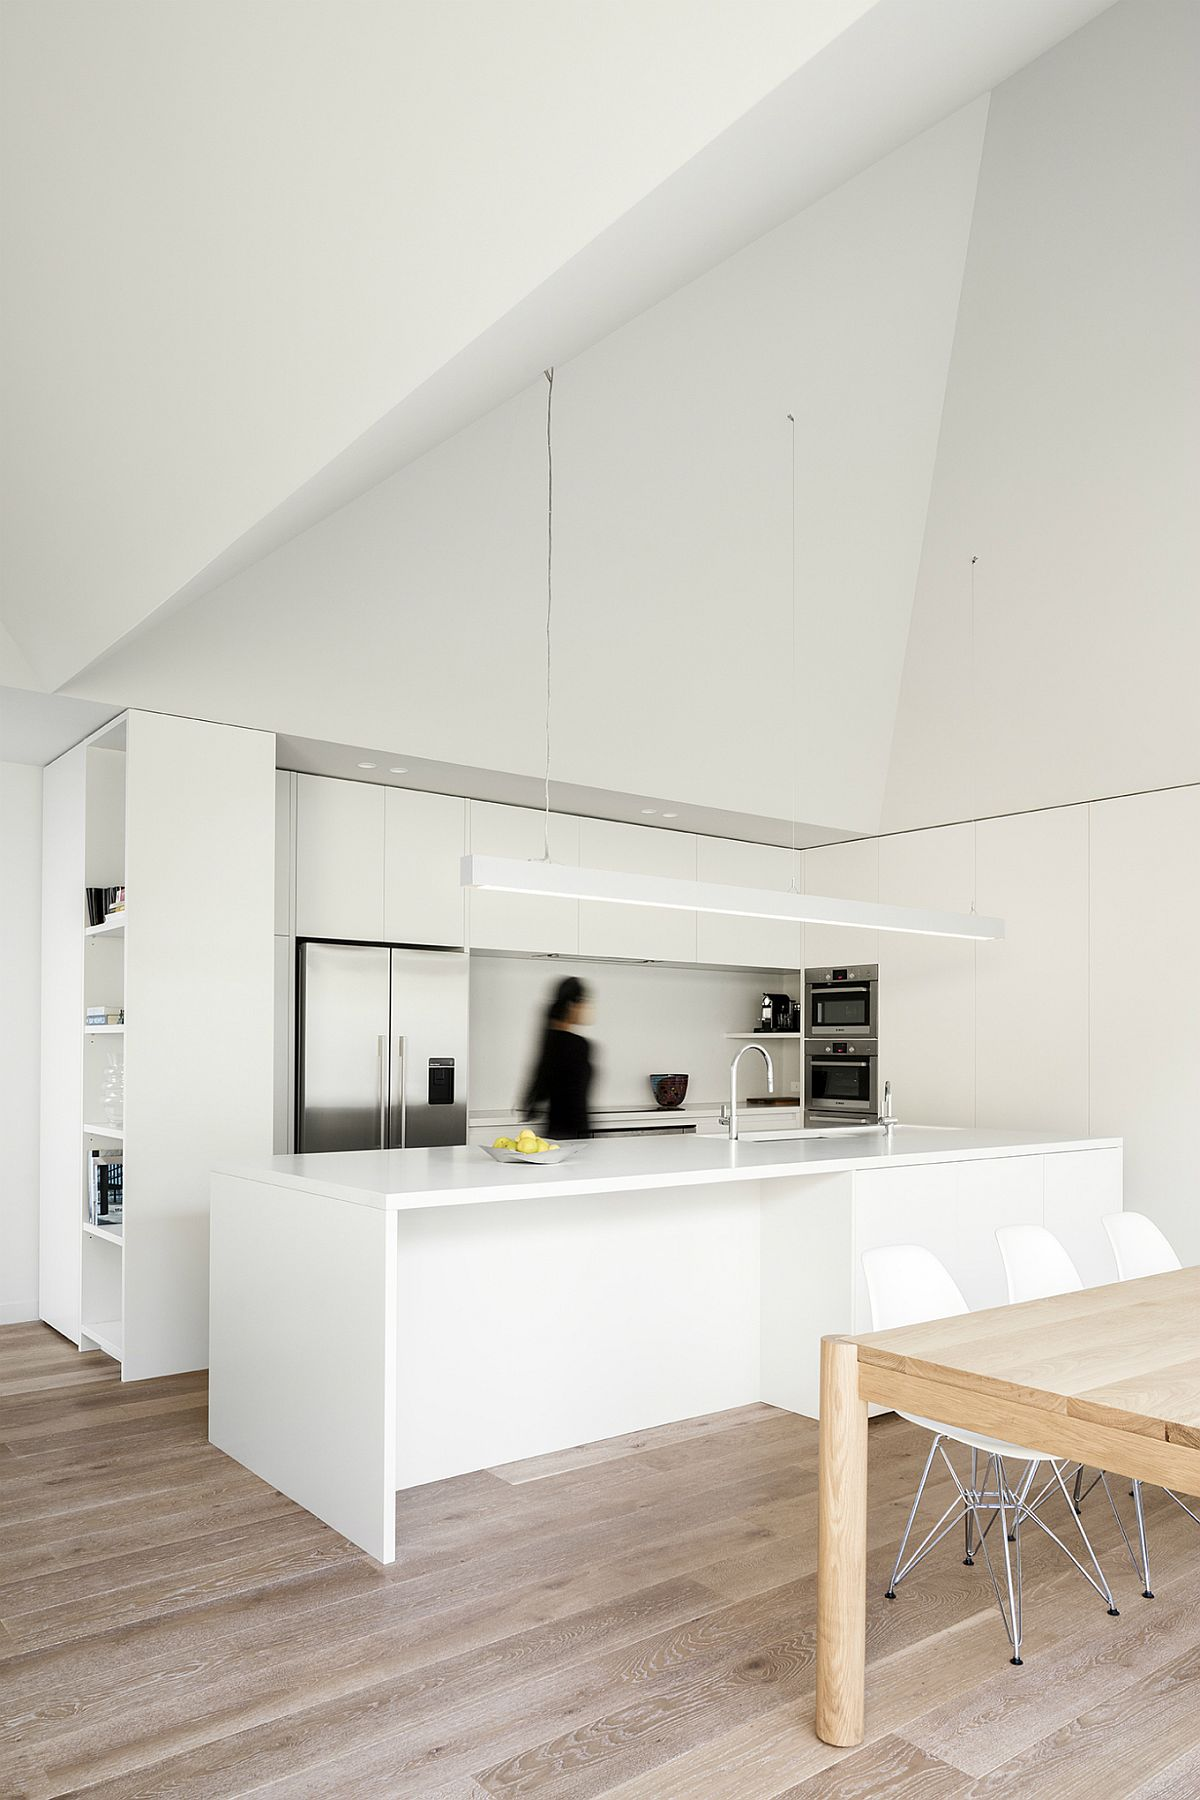 Gable roof gives the interior a more spacious look